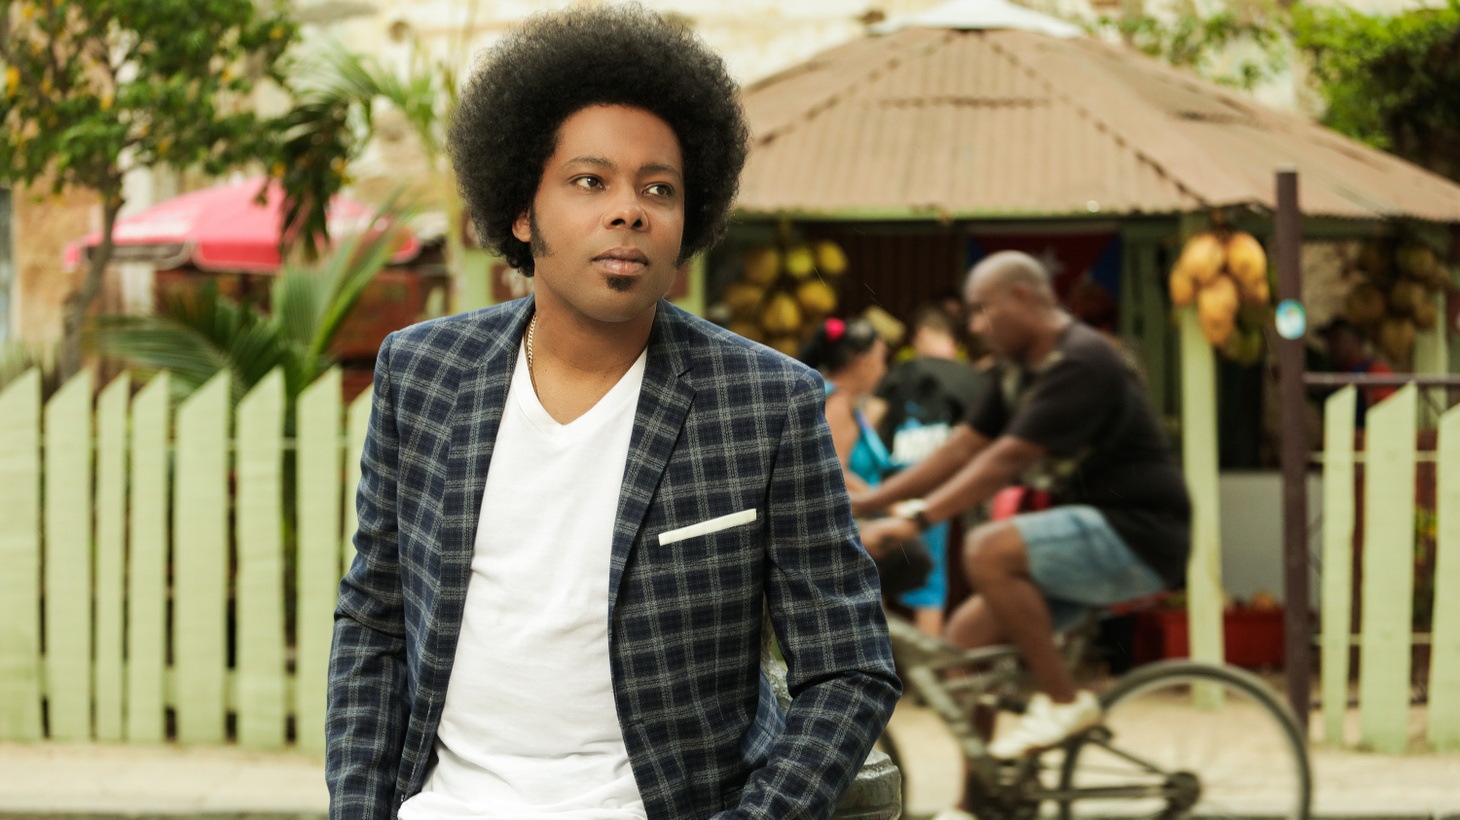 4-time Latin Grammy winner Alex Cuba is back with an acoustic album that is replete with his characteristic optimism. Several duets abound pairing him with Mexico City notables, as well as some of the brightest voices from his native Cuba.